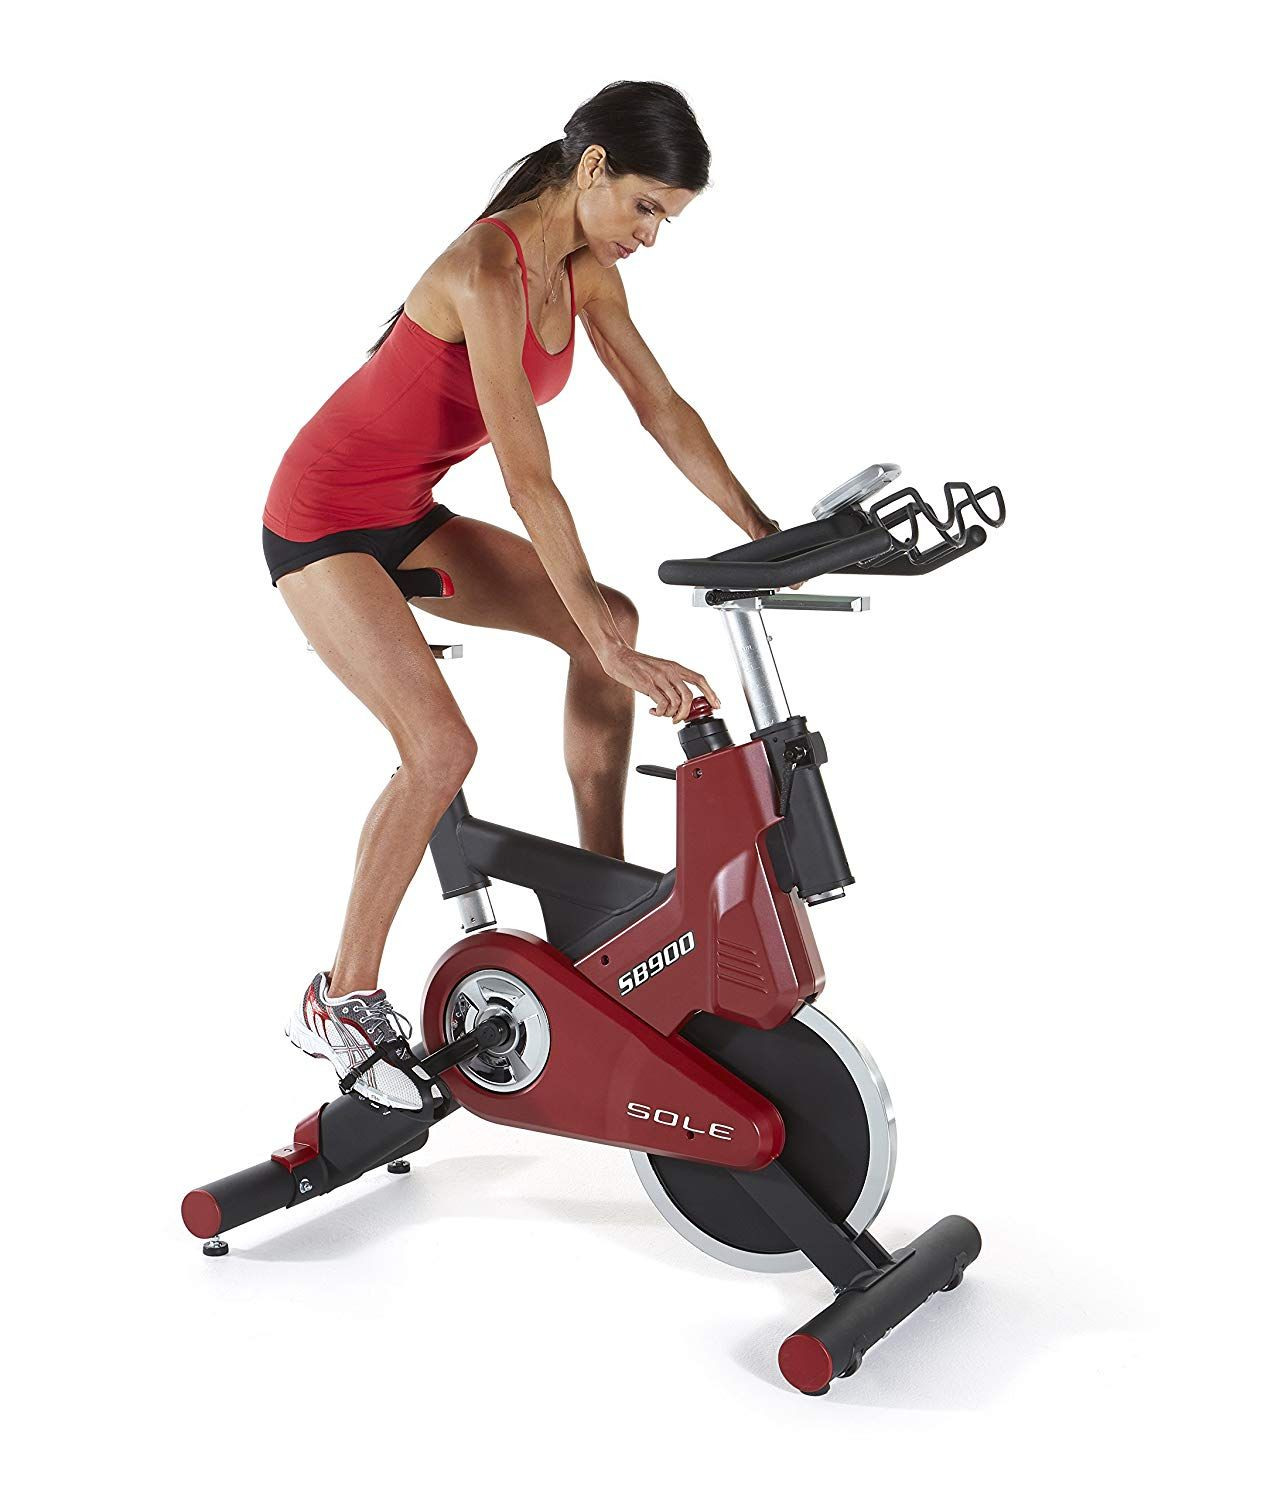 Best Spin Bike Reviews In 2020 Exercise Bike Reviews Bike